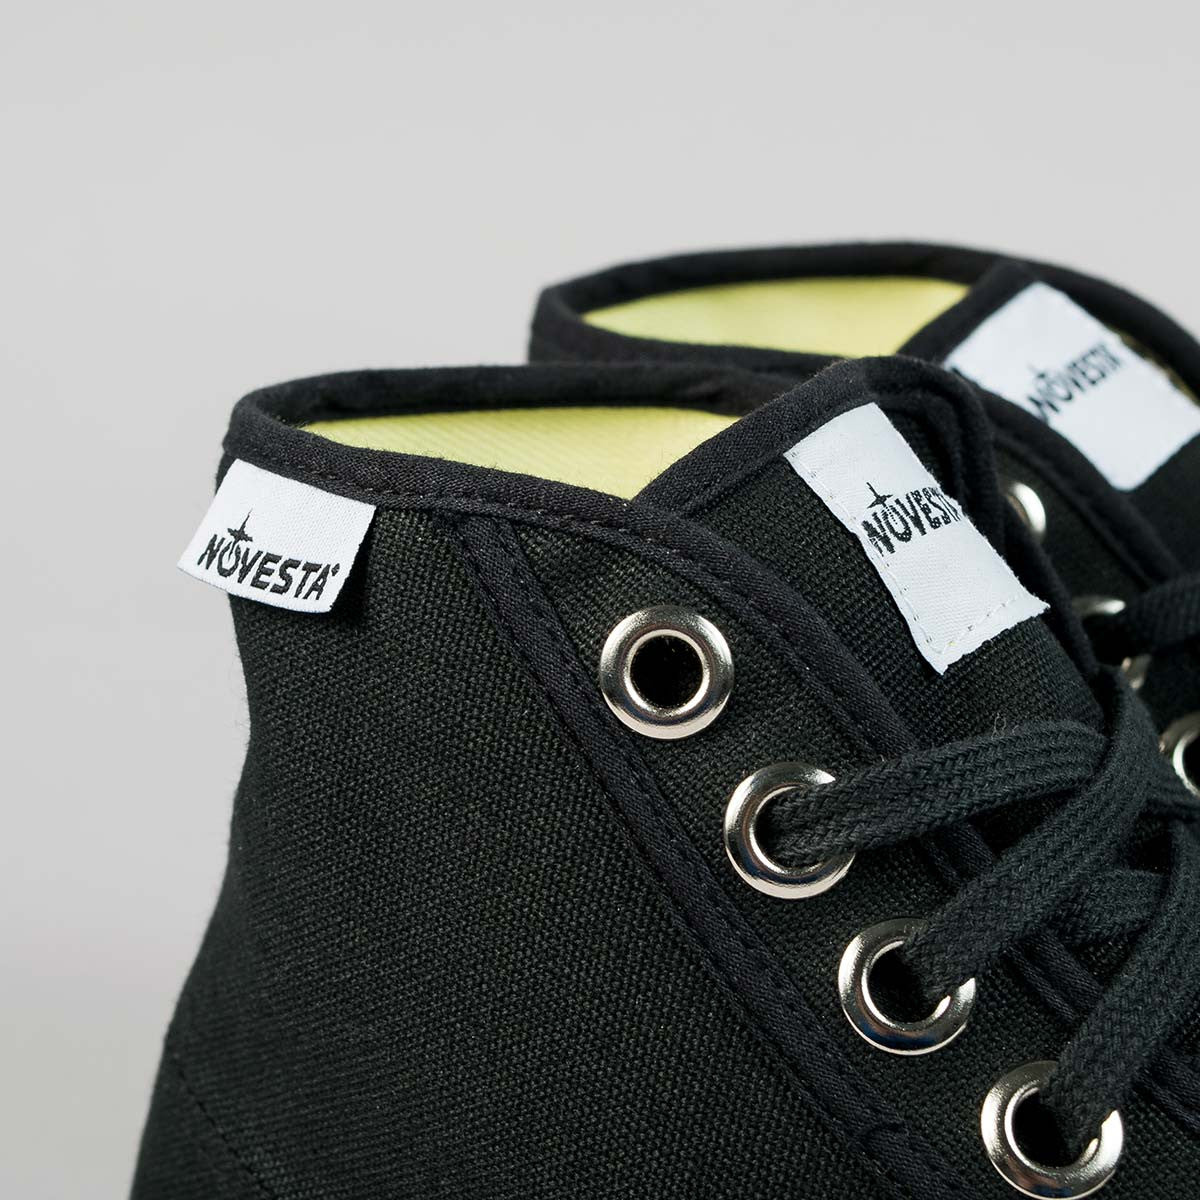 Novesta Star Dribble - Black - 5